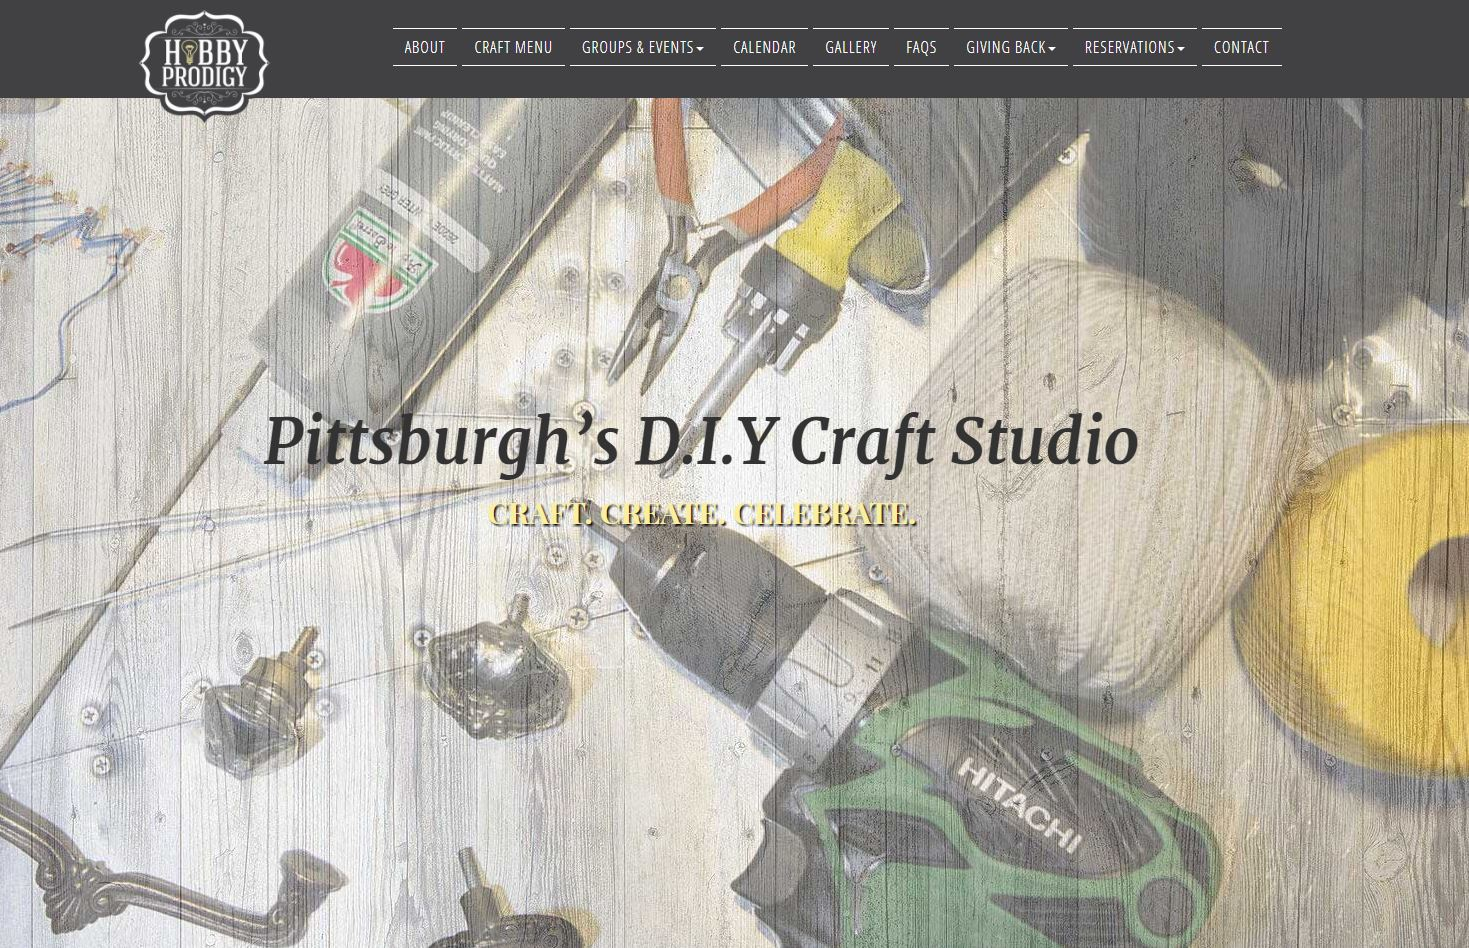 Dds web design hobby prodigy pittsburghs diy craft studio come on in and celebrate your inner prodigy with a diy craft handmadewithlove you can dream it up find your inspiration or chose from our library solutioingenieria Gallery